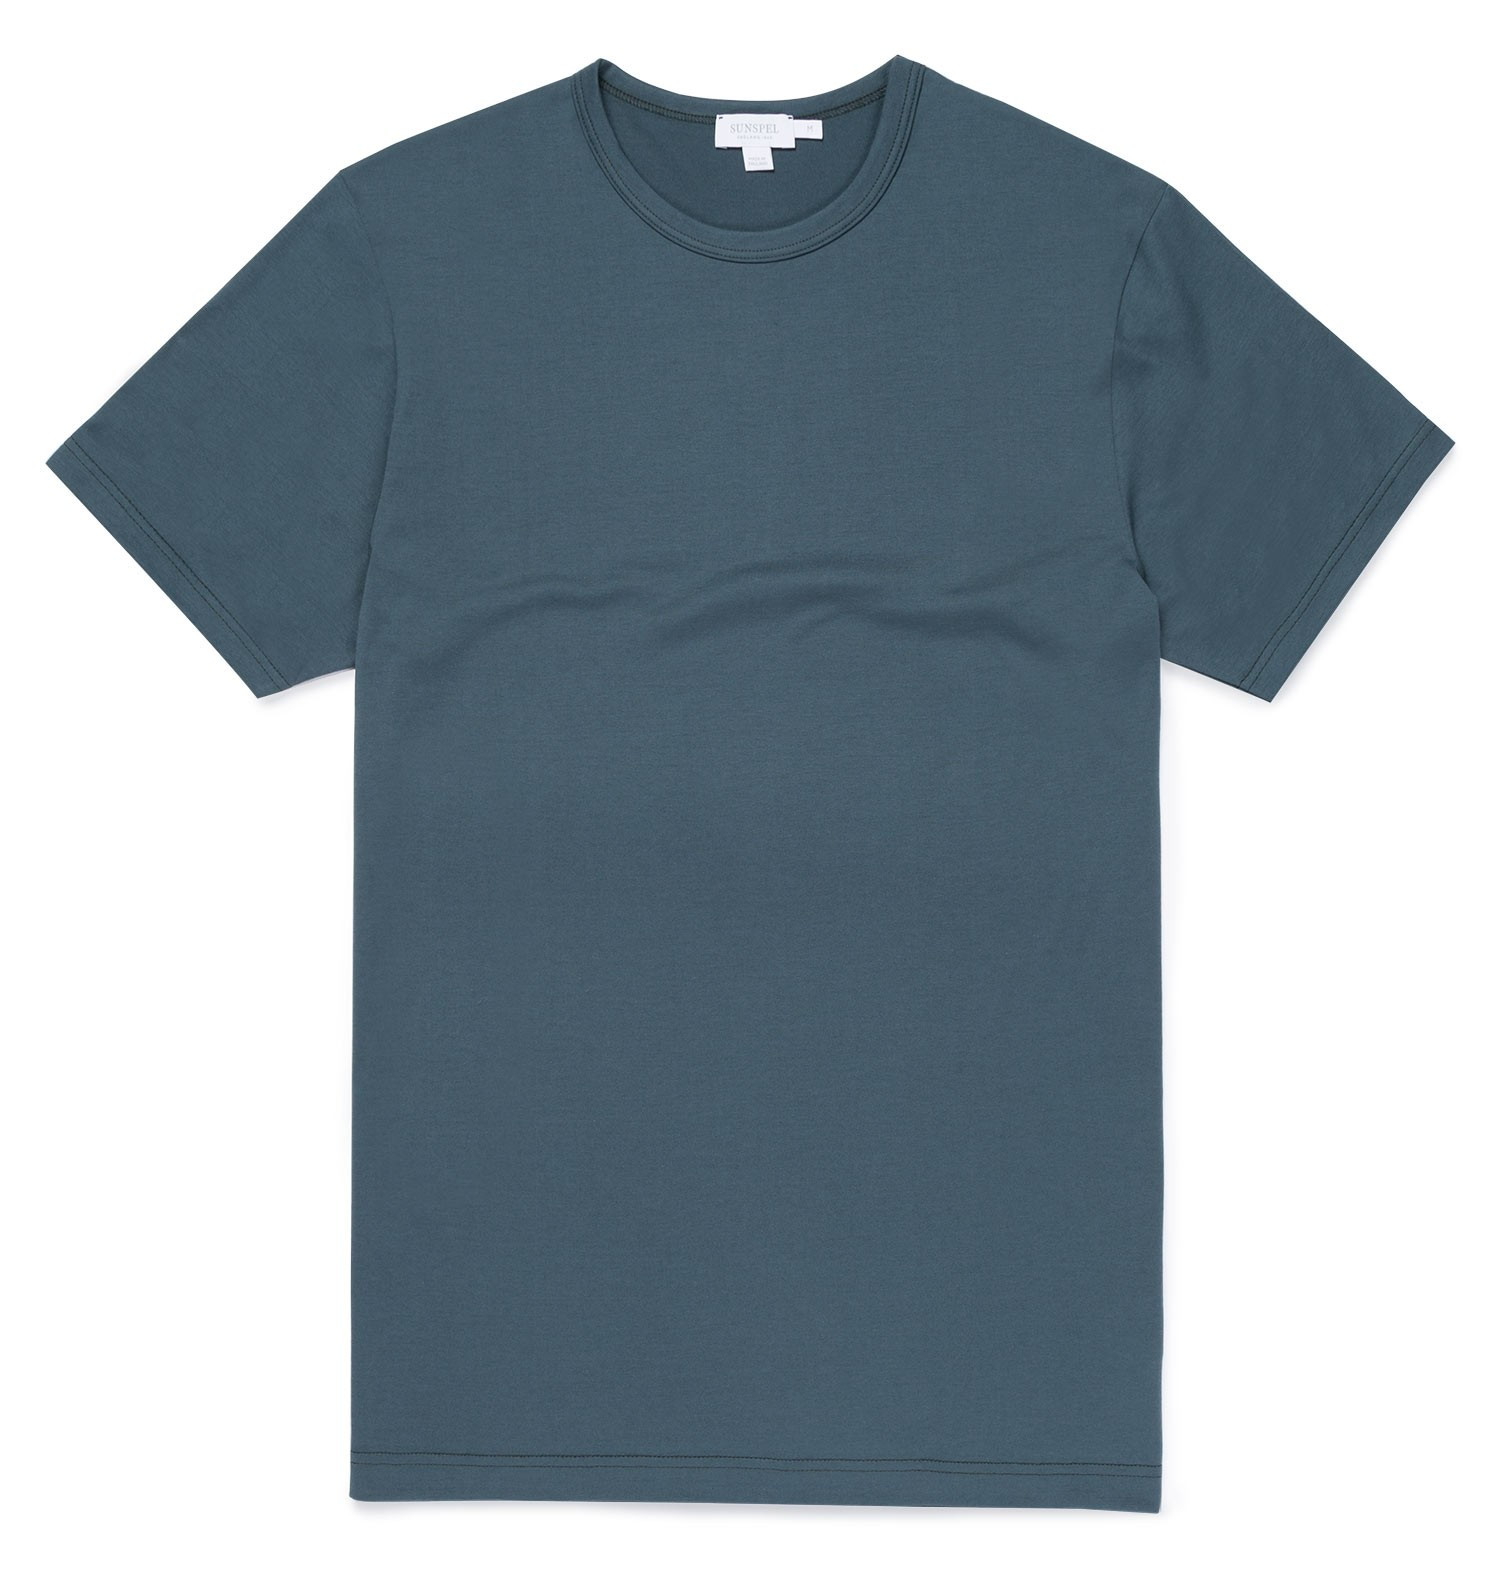 Sunspel Samphire Men's Classic Cotton T-Shirt